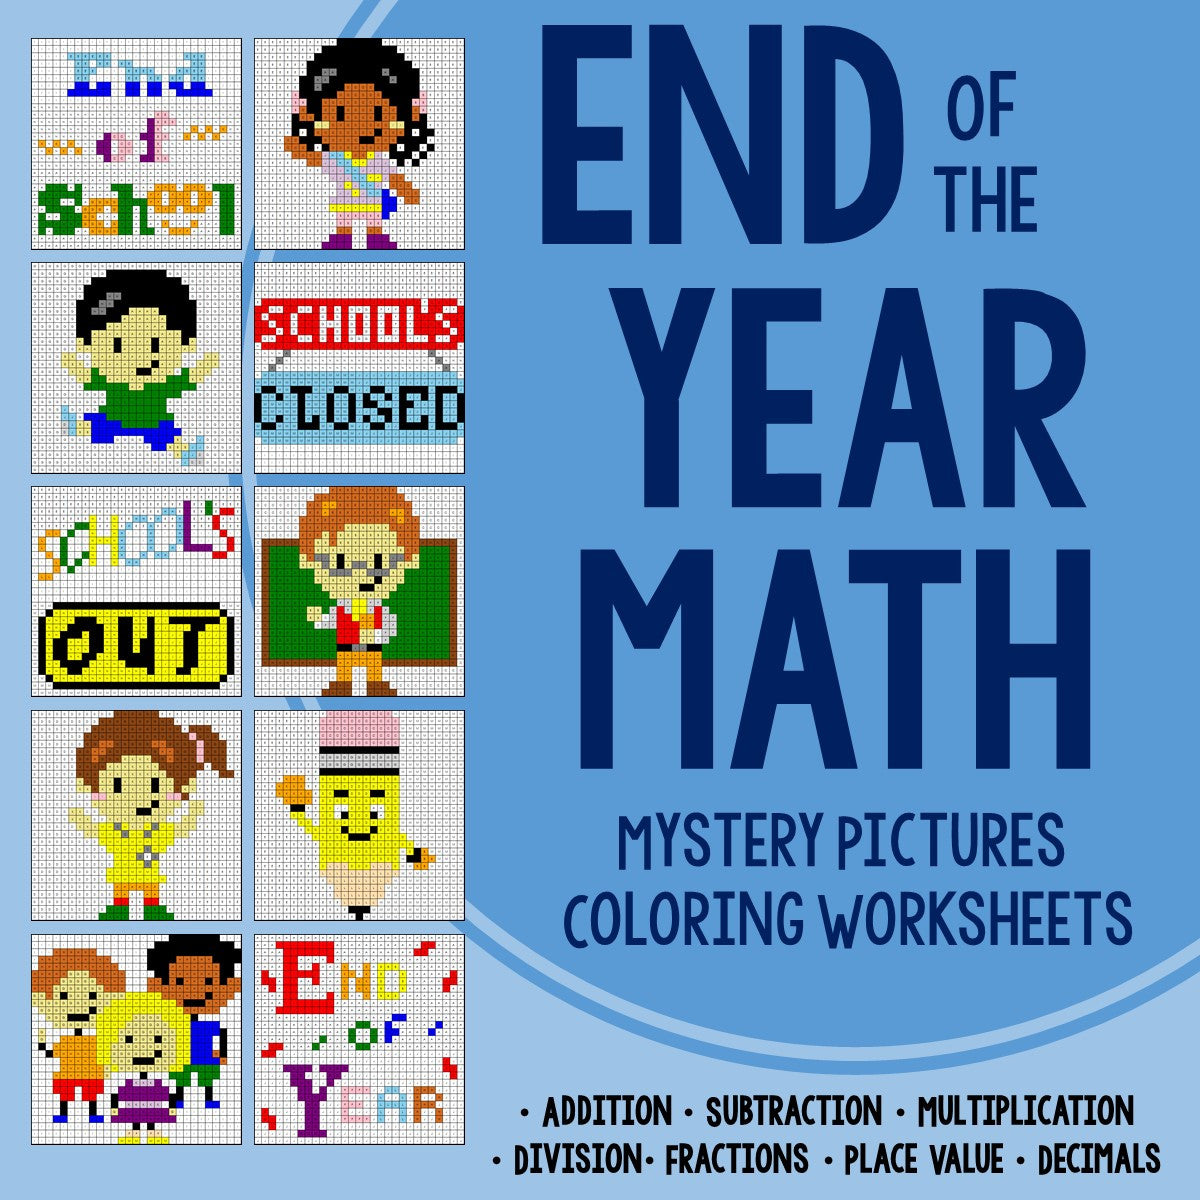 5th Grade Multiplying Fractions Worksheets - Printables & Worksheets